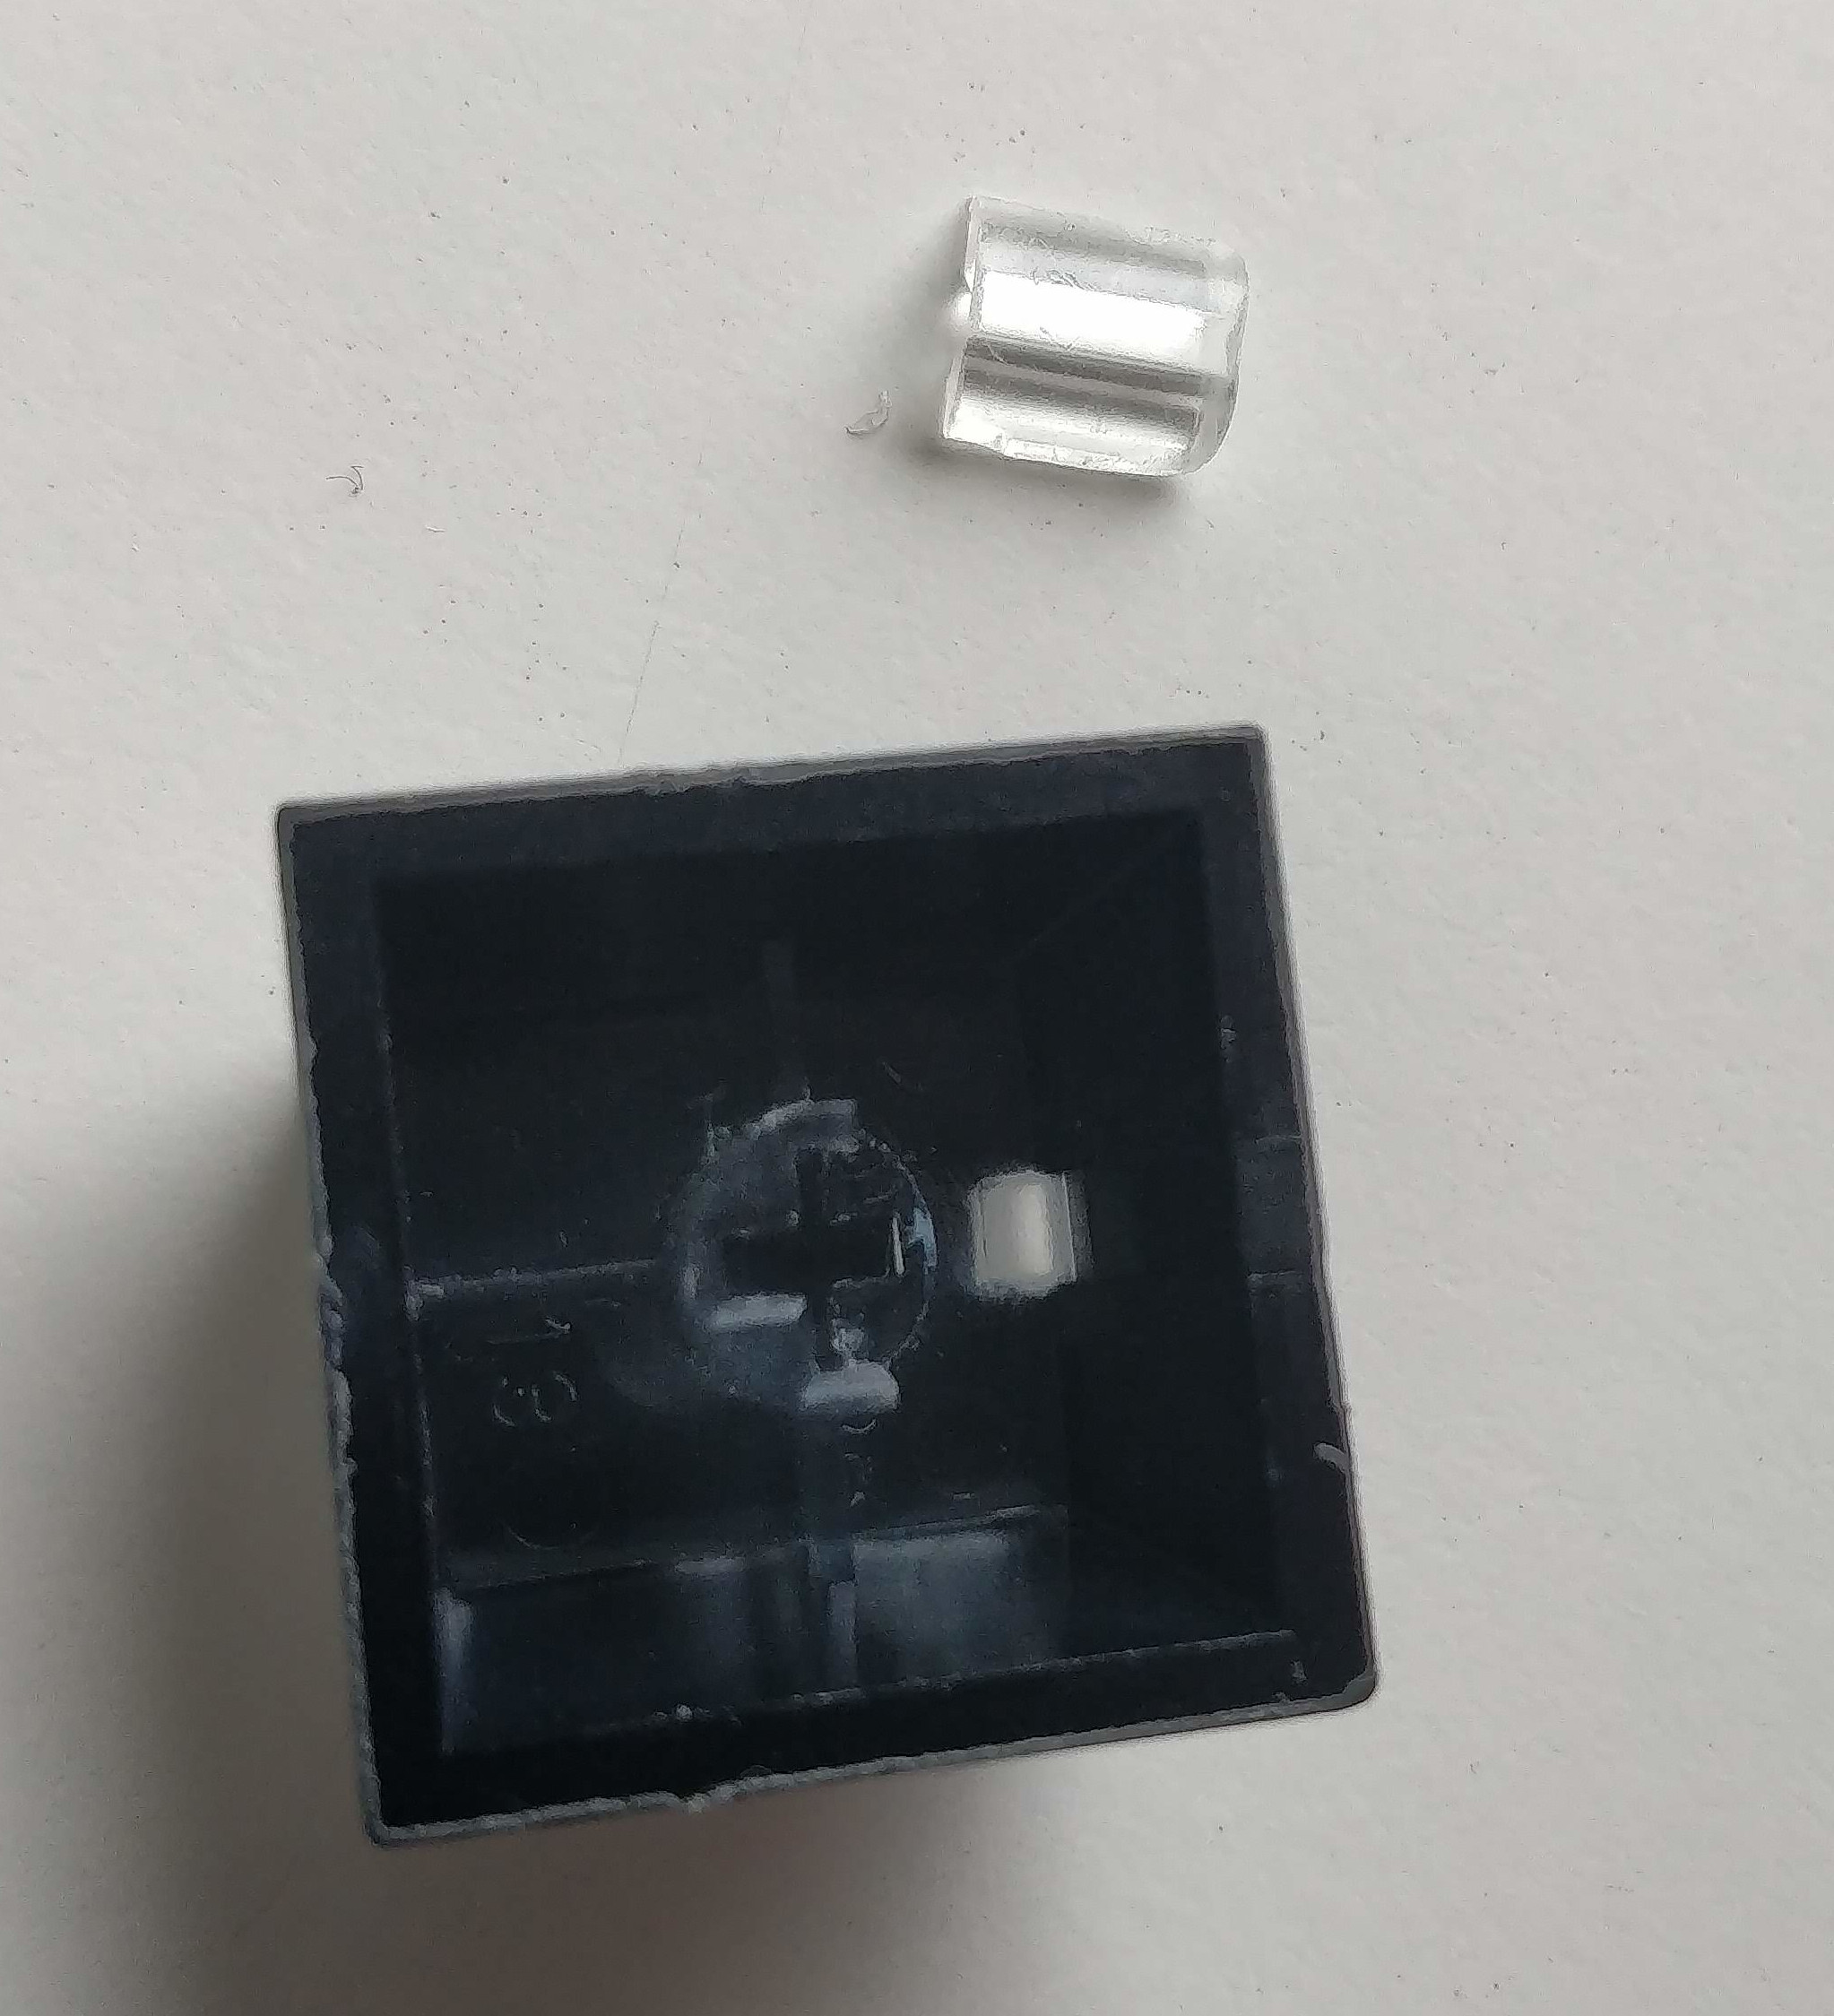 Broken stem of the insert keycap